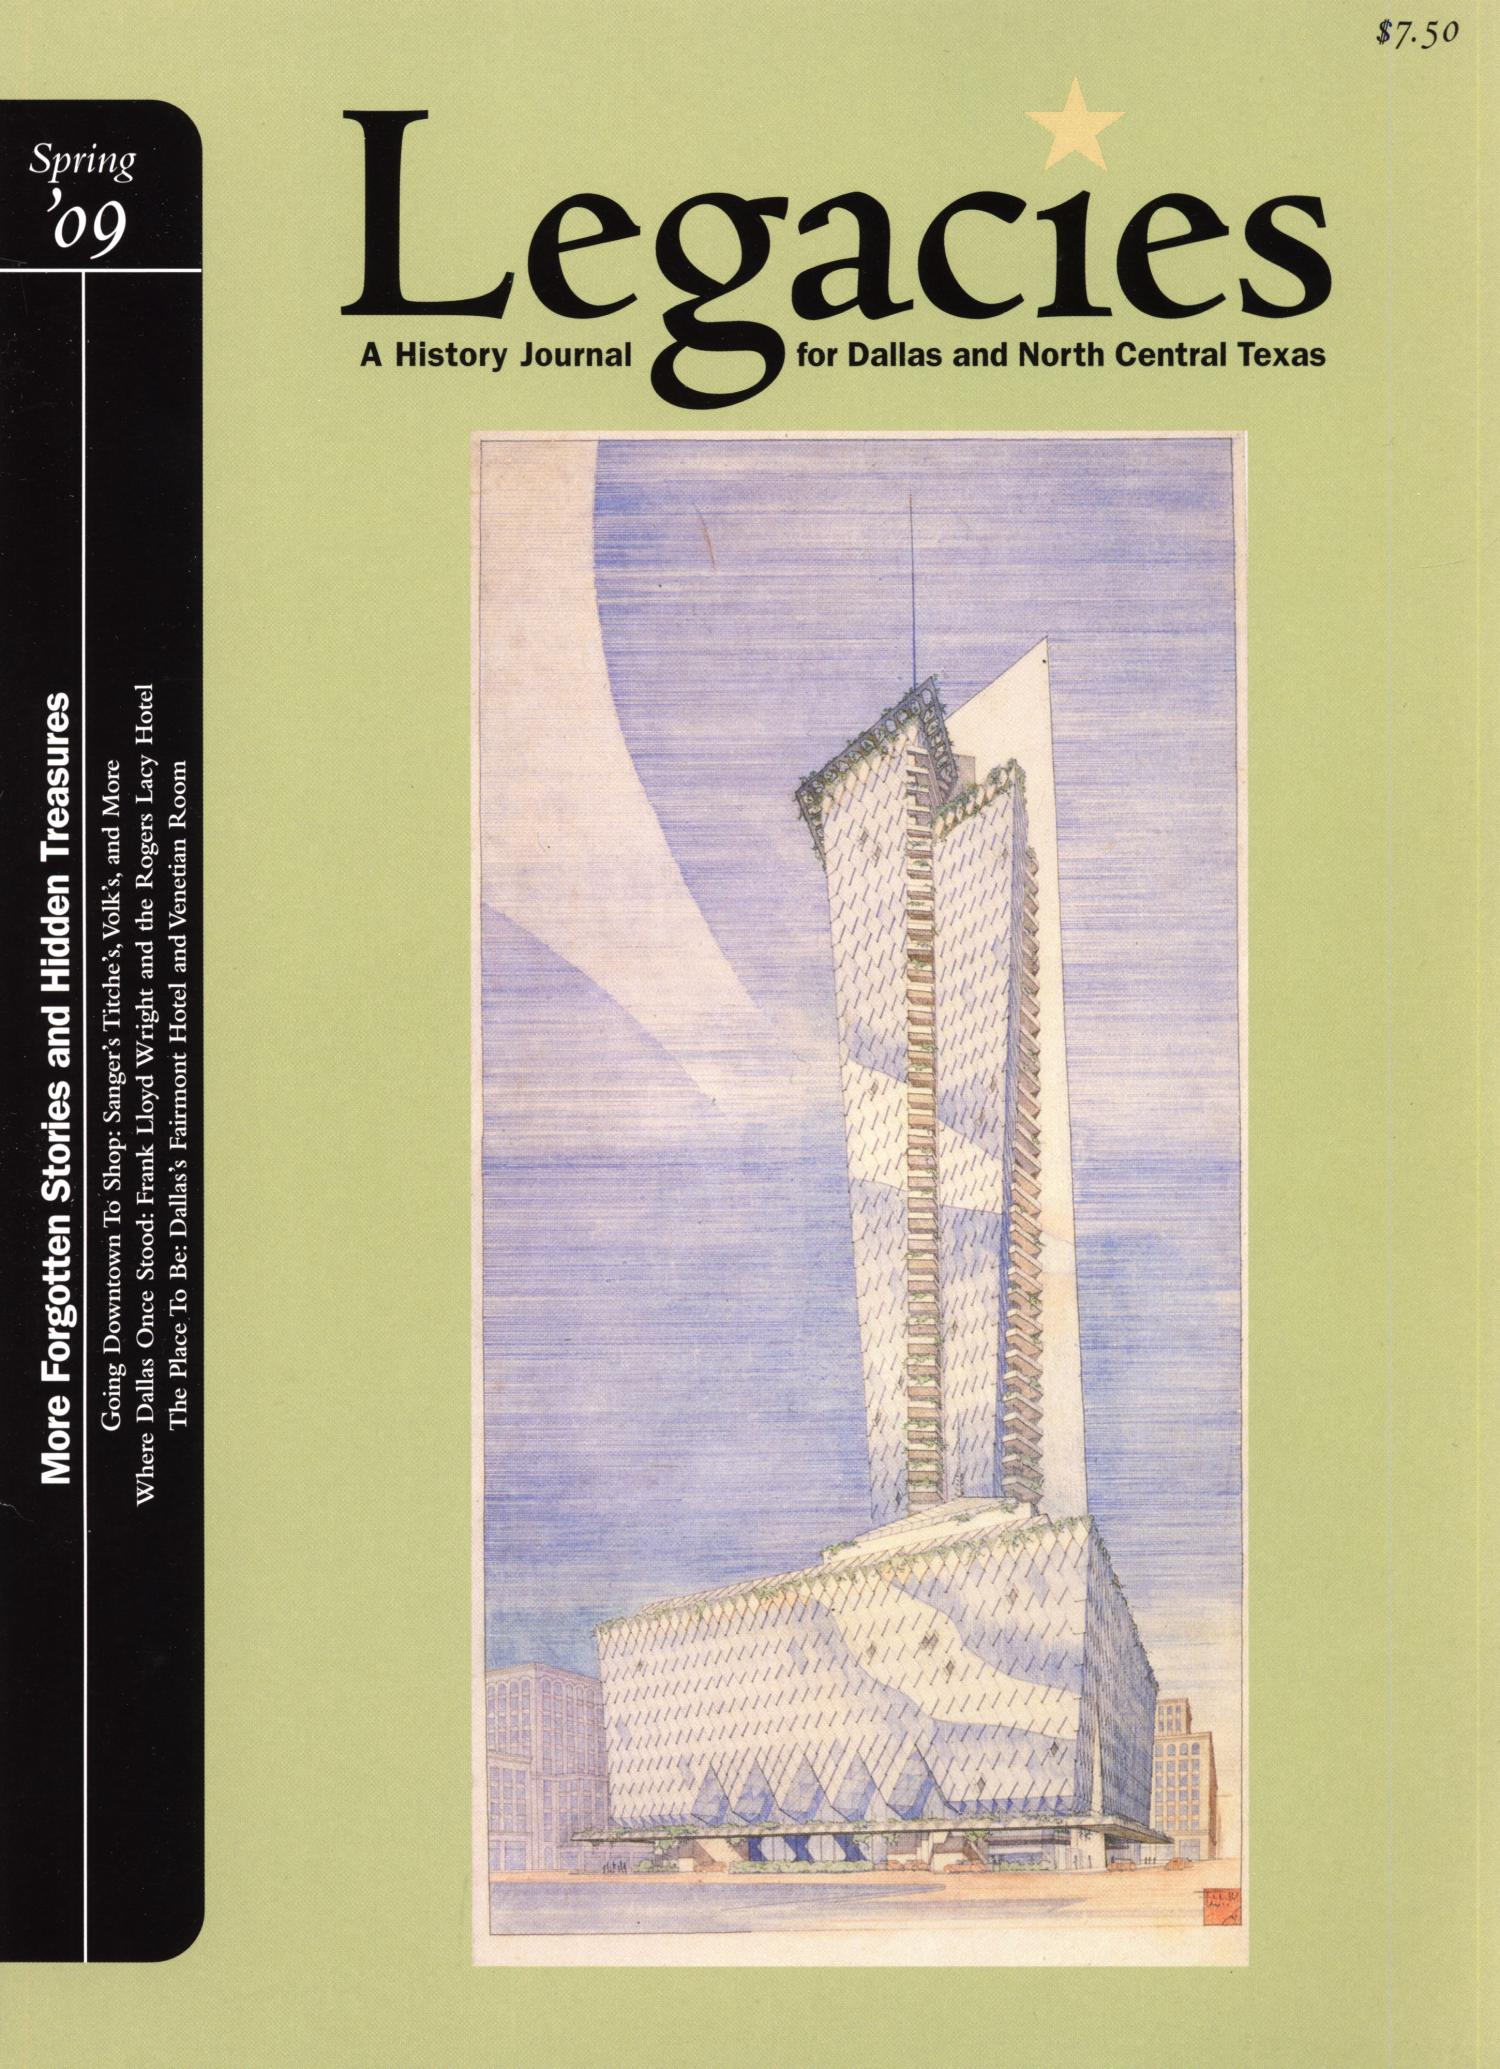 Legacies: A History Journal for Dallas and North Central Texas, Volume 21, Number 1, Spring, 2009                                                                                                      Front Cover